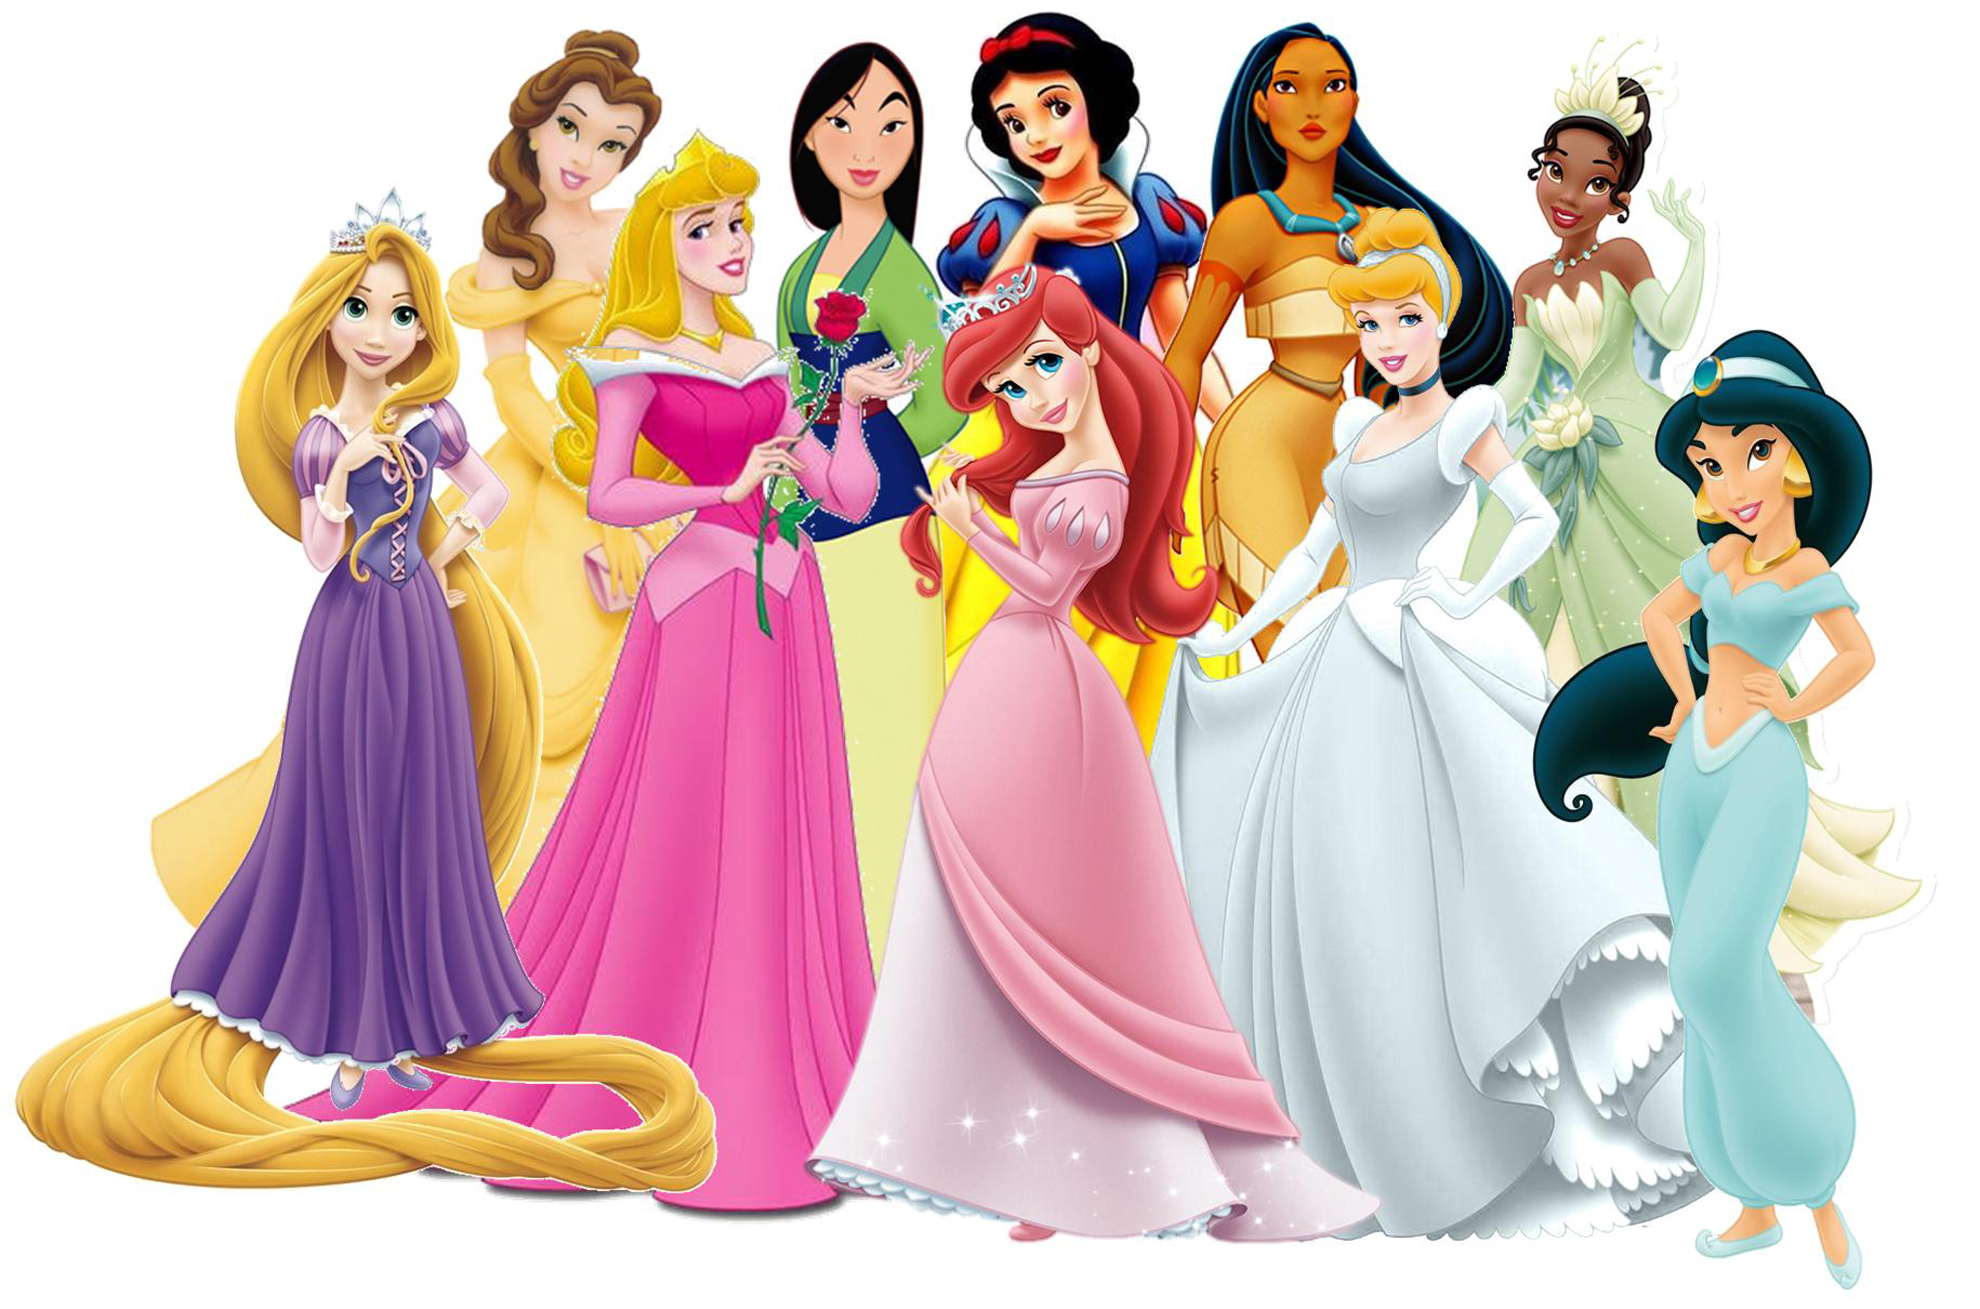 Princesas disney fondos disney princess wallpapers - Female cartoon characters wallpapers ...